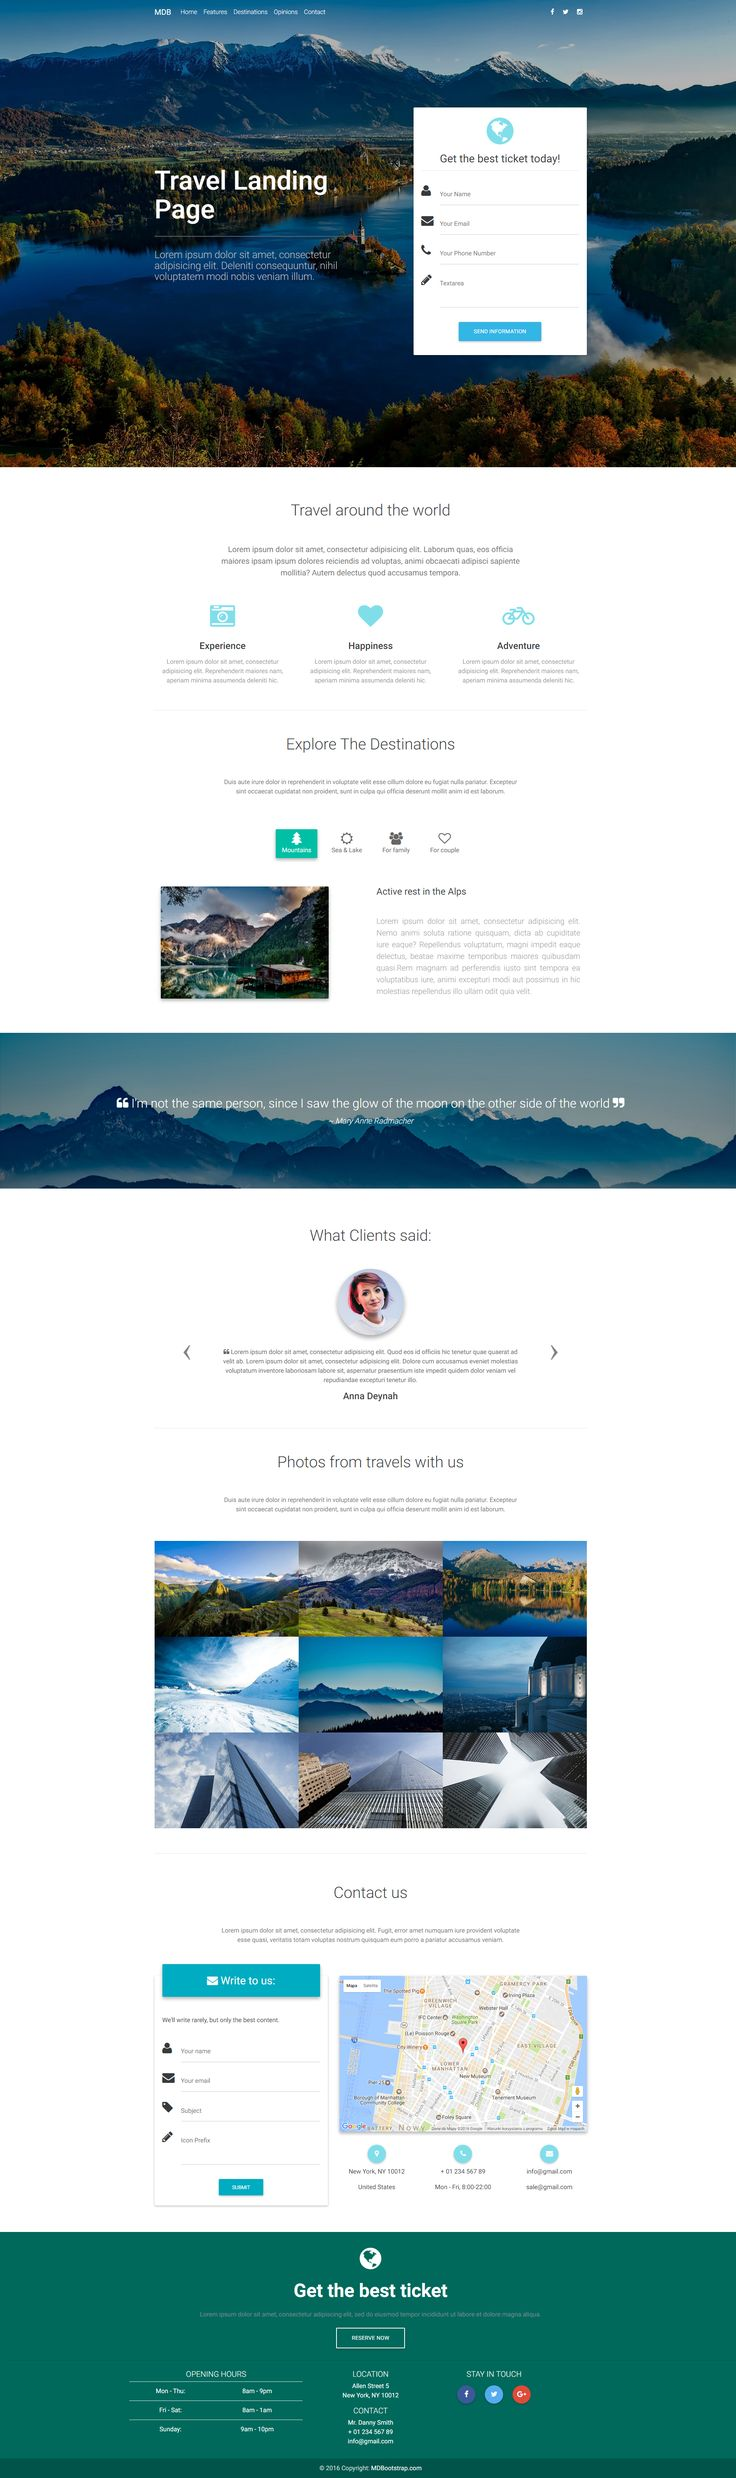 Travel Landing Page Template created with Material Design for Bootstrap